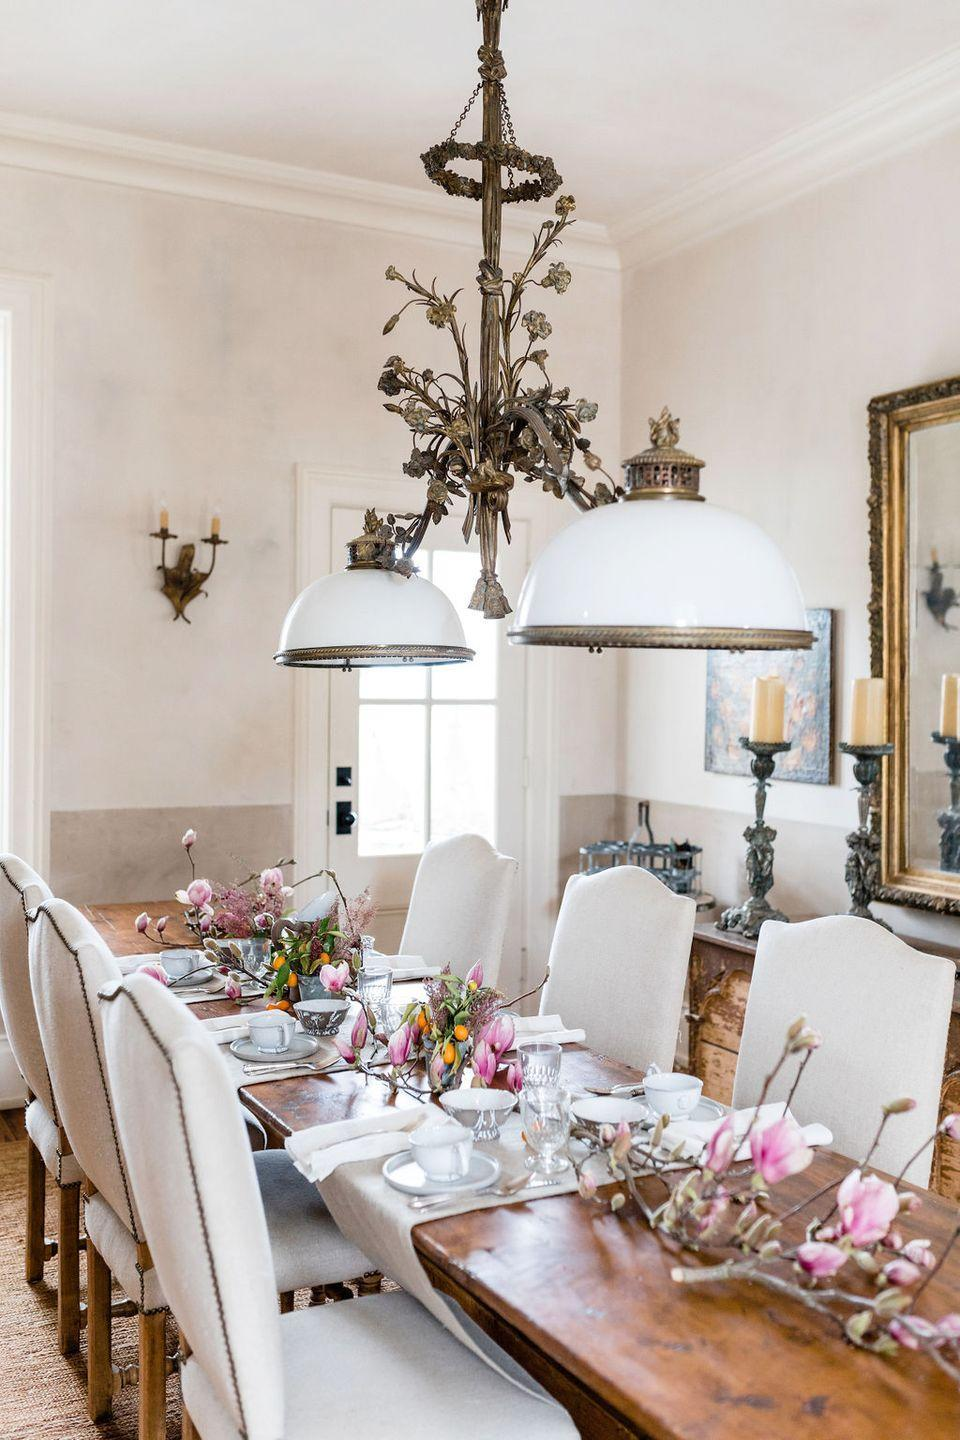 """<p>What could bring more springtime cheer than cherry blossoms? Lay some branches down the center of the table for a grounded, romantic Easter meal. </p><p><strong><em>West Elm SIN Venule Five-Way Vessel $268,</em></strong> <a class=""""link rapid-noclick-resp"""" href=""""https://go.redirectingat.com?id=74968X1596630&url=https%3A%2F%2Fwww.westelm.com%2Fproducts%2Flcl-sin-venule-five-way-vessel-d7297%2F&sref=https%3A%2F%2Fwww.housebeautiful.com%2Fentertaining%2Fflower-arrangements%2Fg19409803%2Feaster-flower-arrangements%2F"""" rel=""""nofollow noopener"""" target=""""_blank"""" data-ylk=""""slk:BUY NOW"""">BUY NOW</a></p>"""